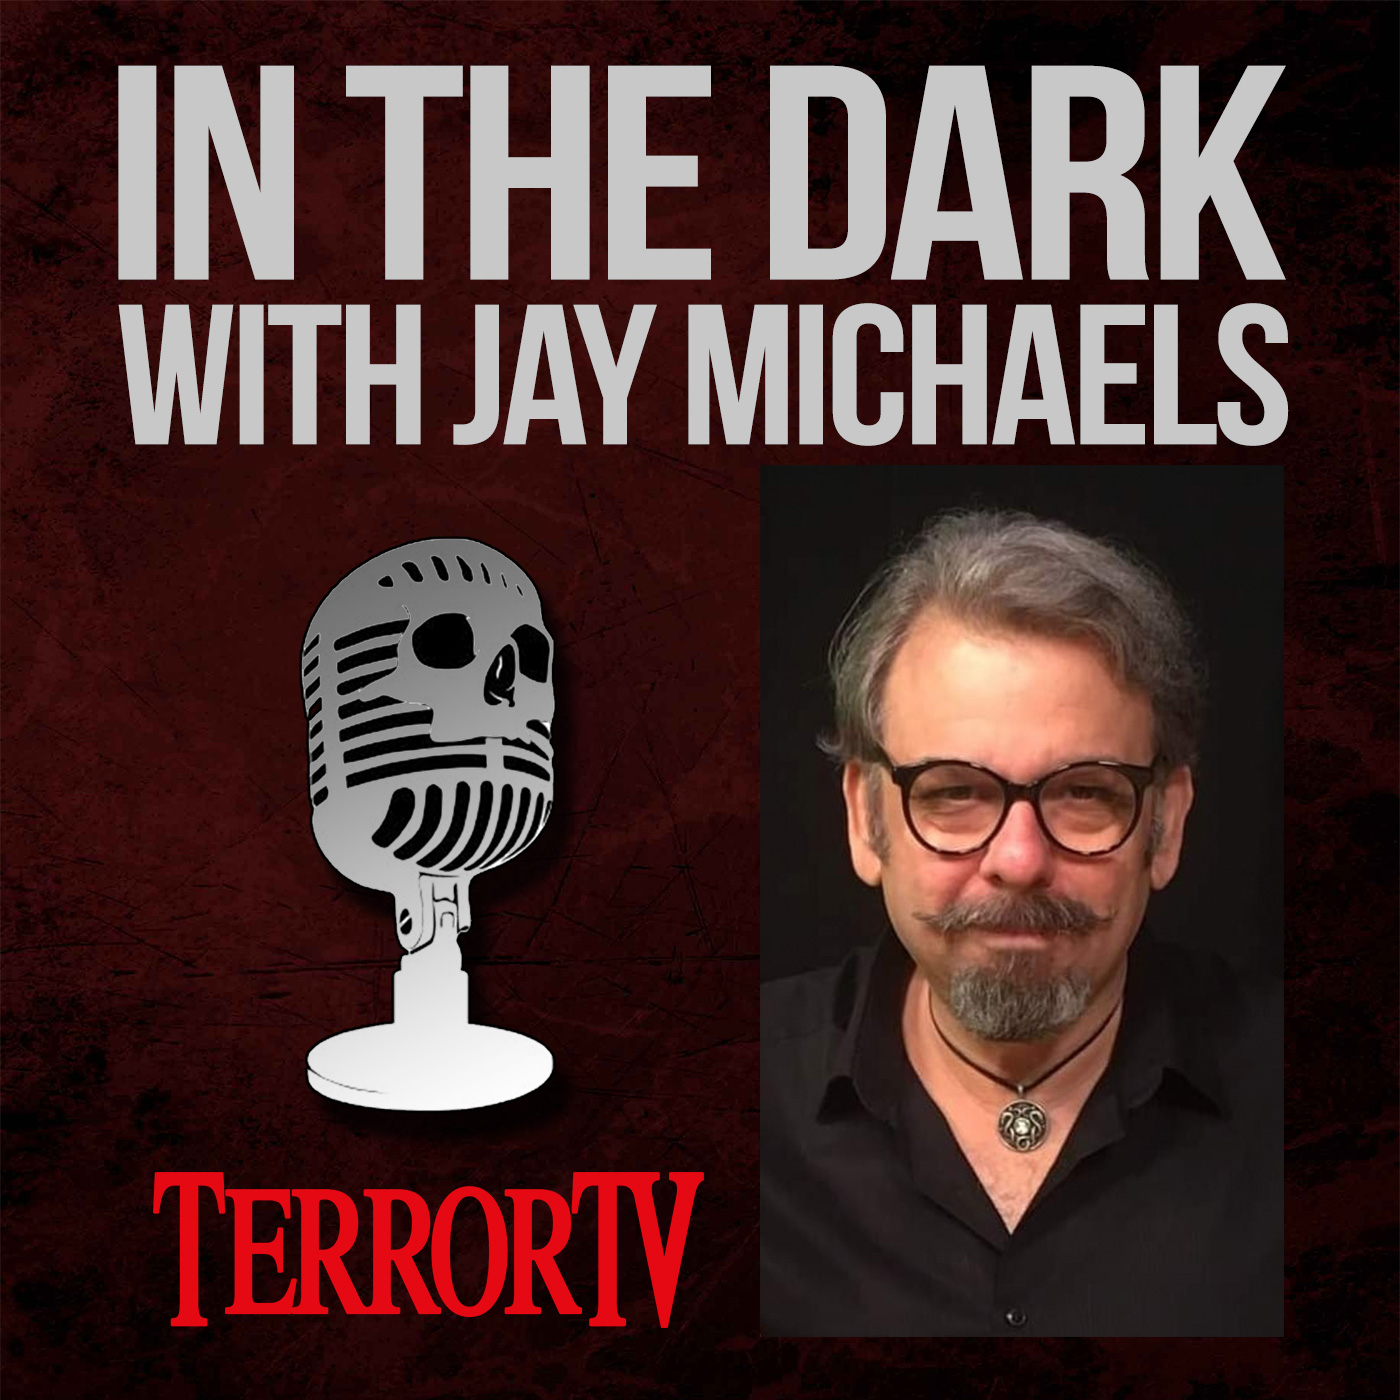 In the Dark with Jay Michaels